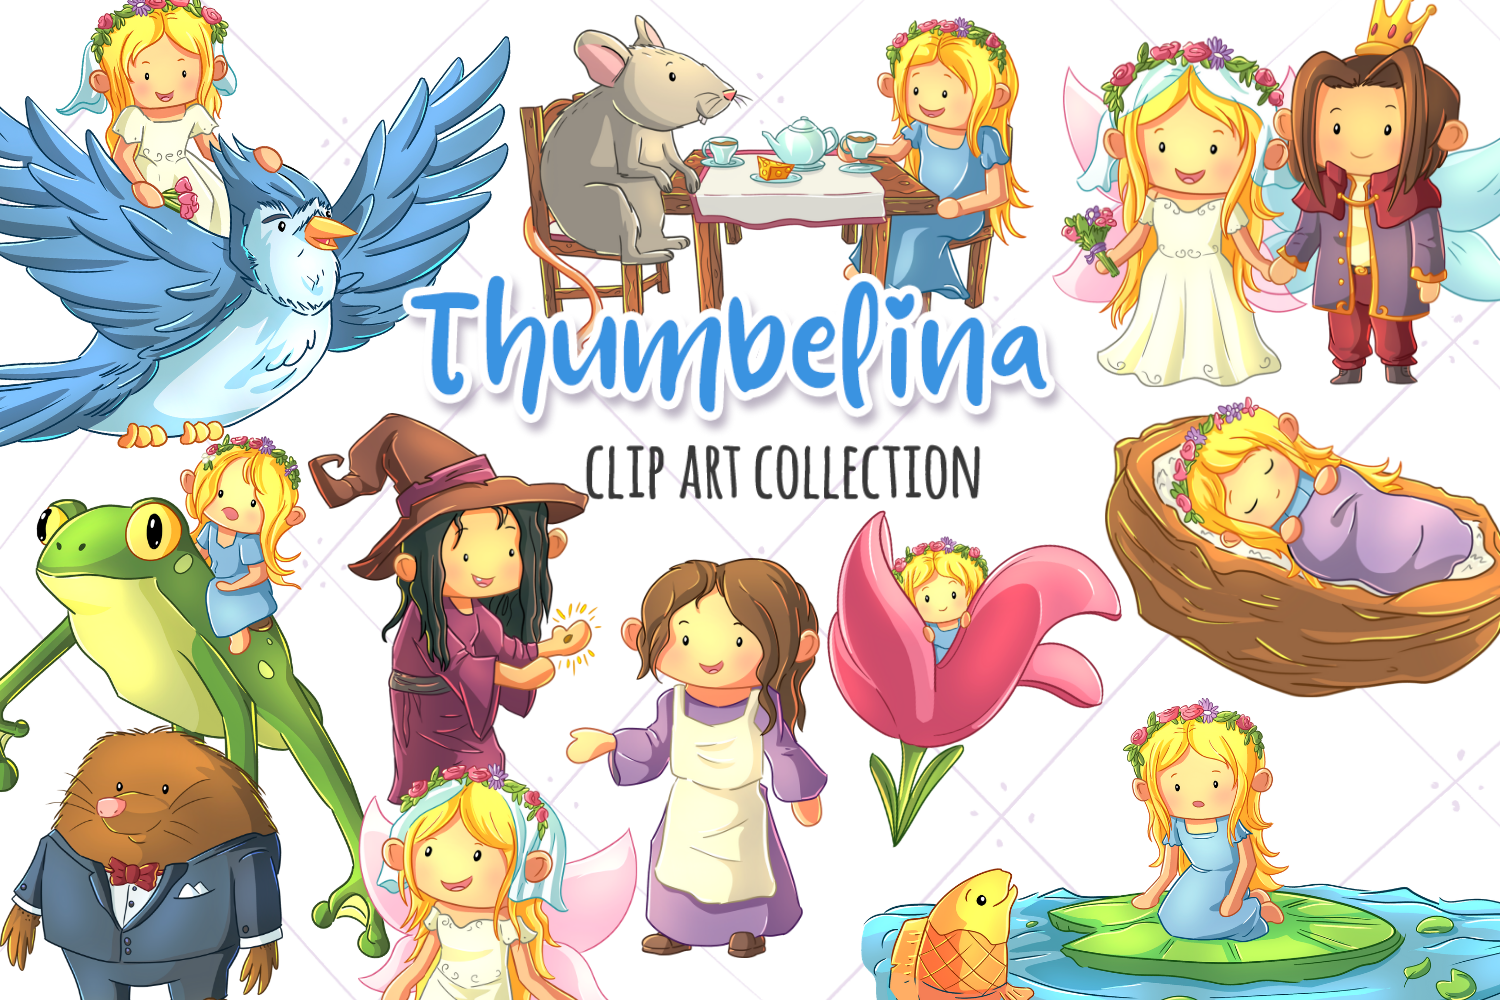 Thumbelina Fairy Tale Clip Art Collection